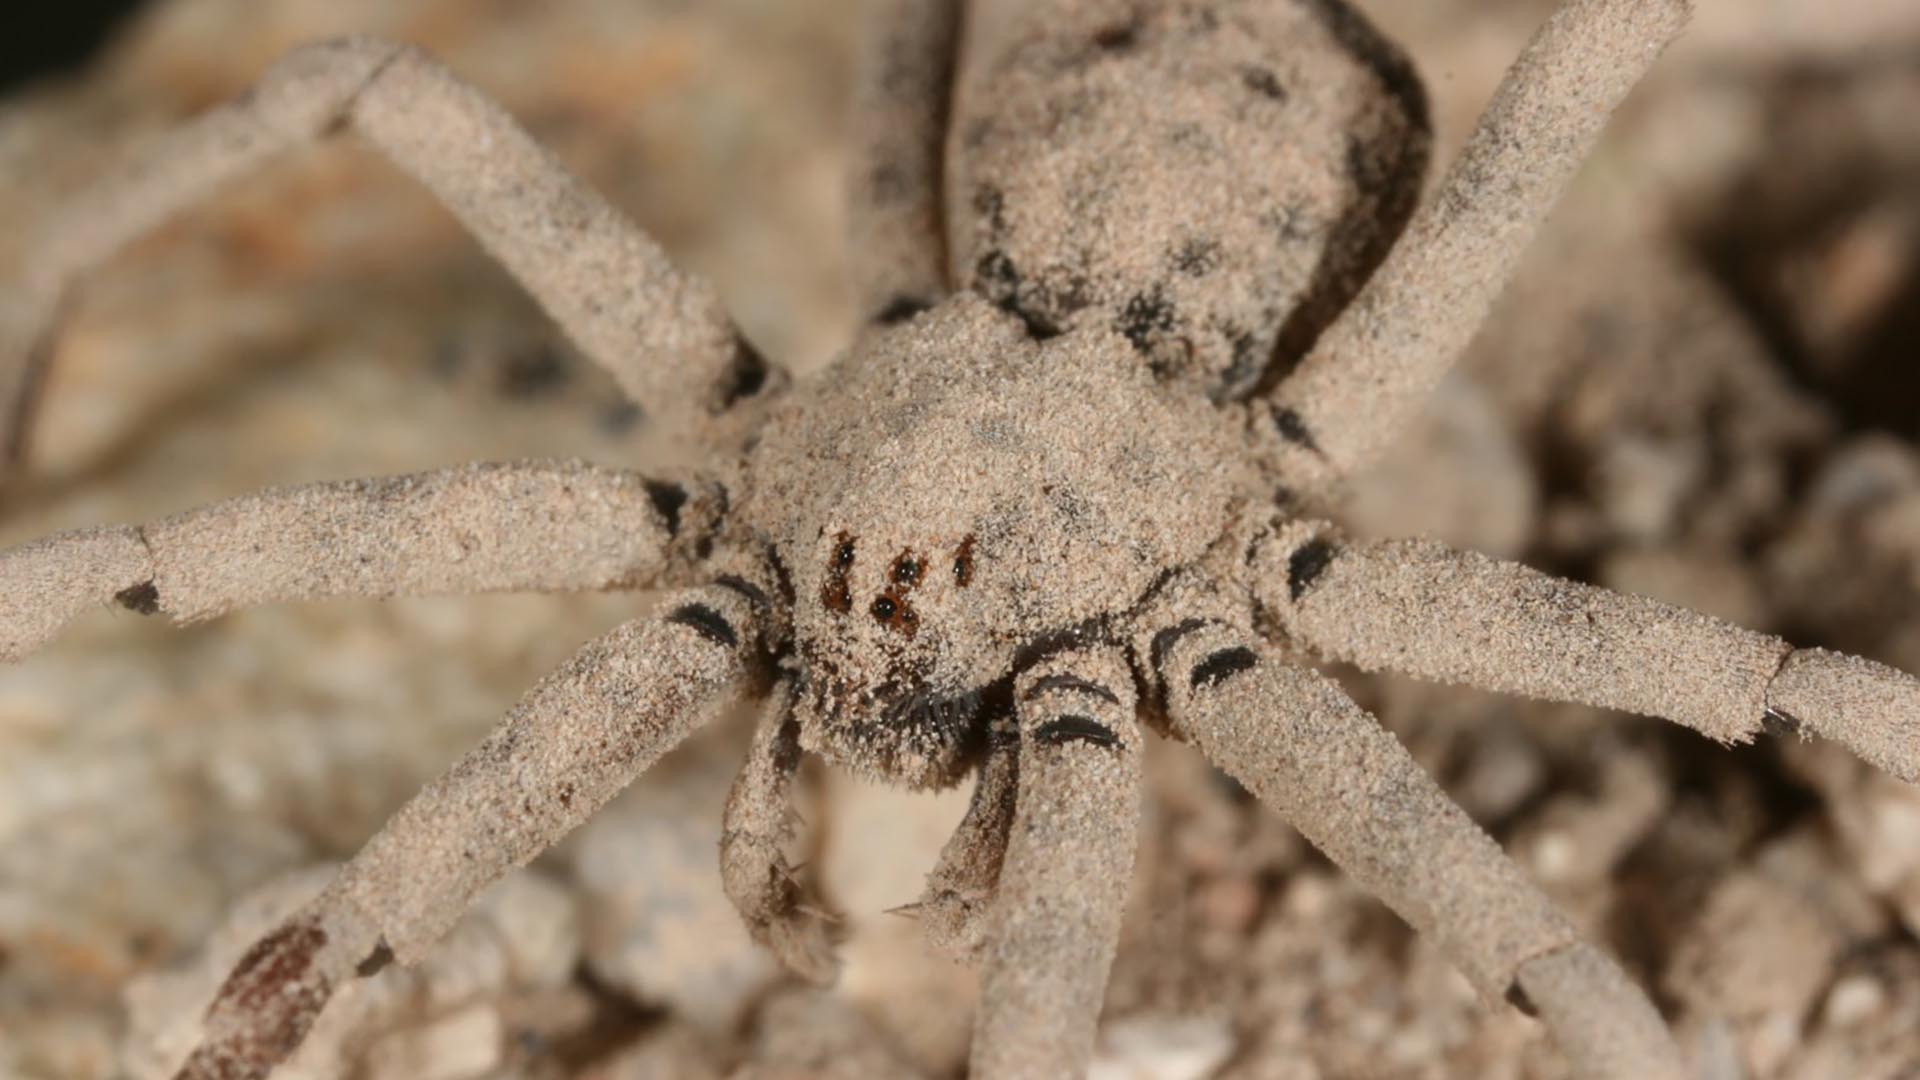 The sand spider, Homalonychus selenopoides, takes a dust bath after each molt.